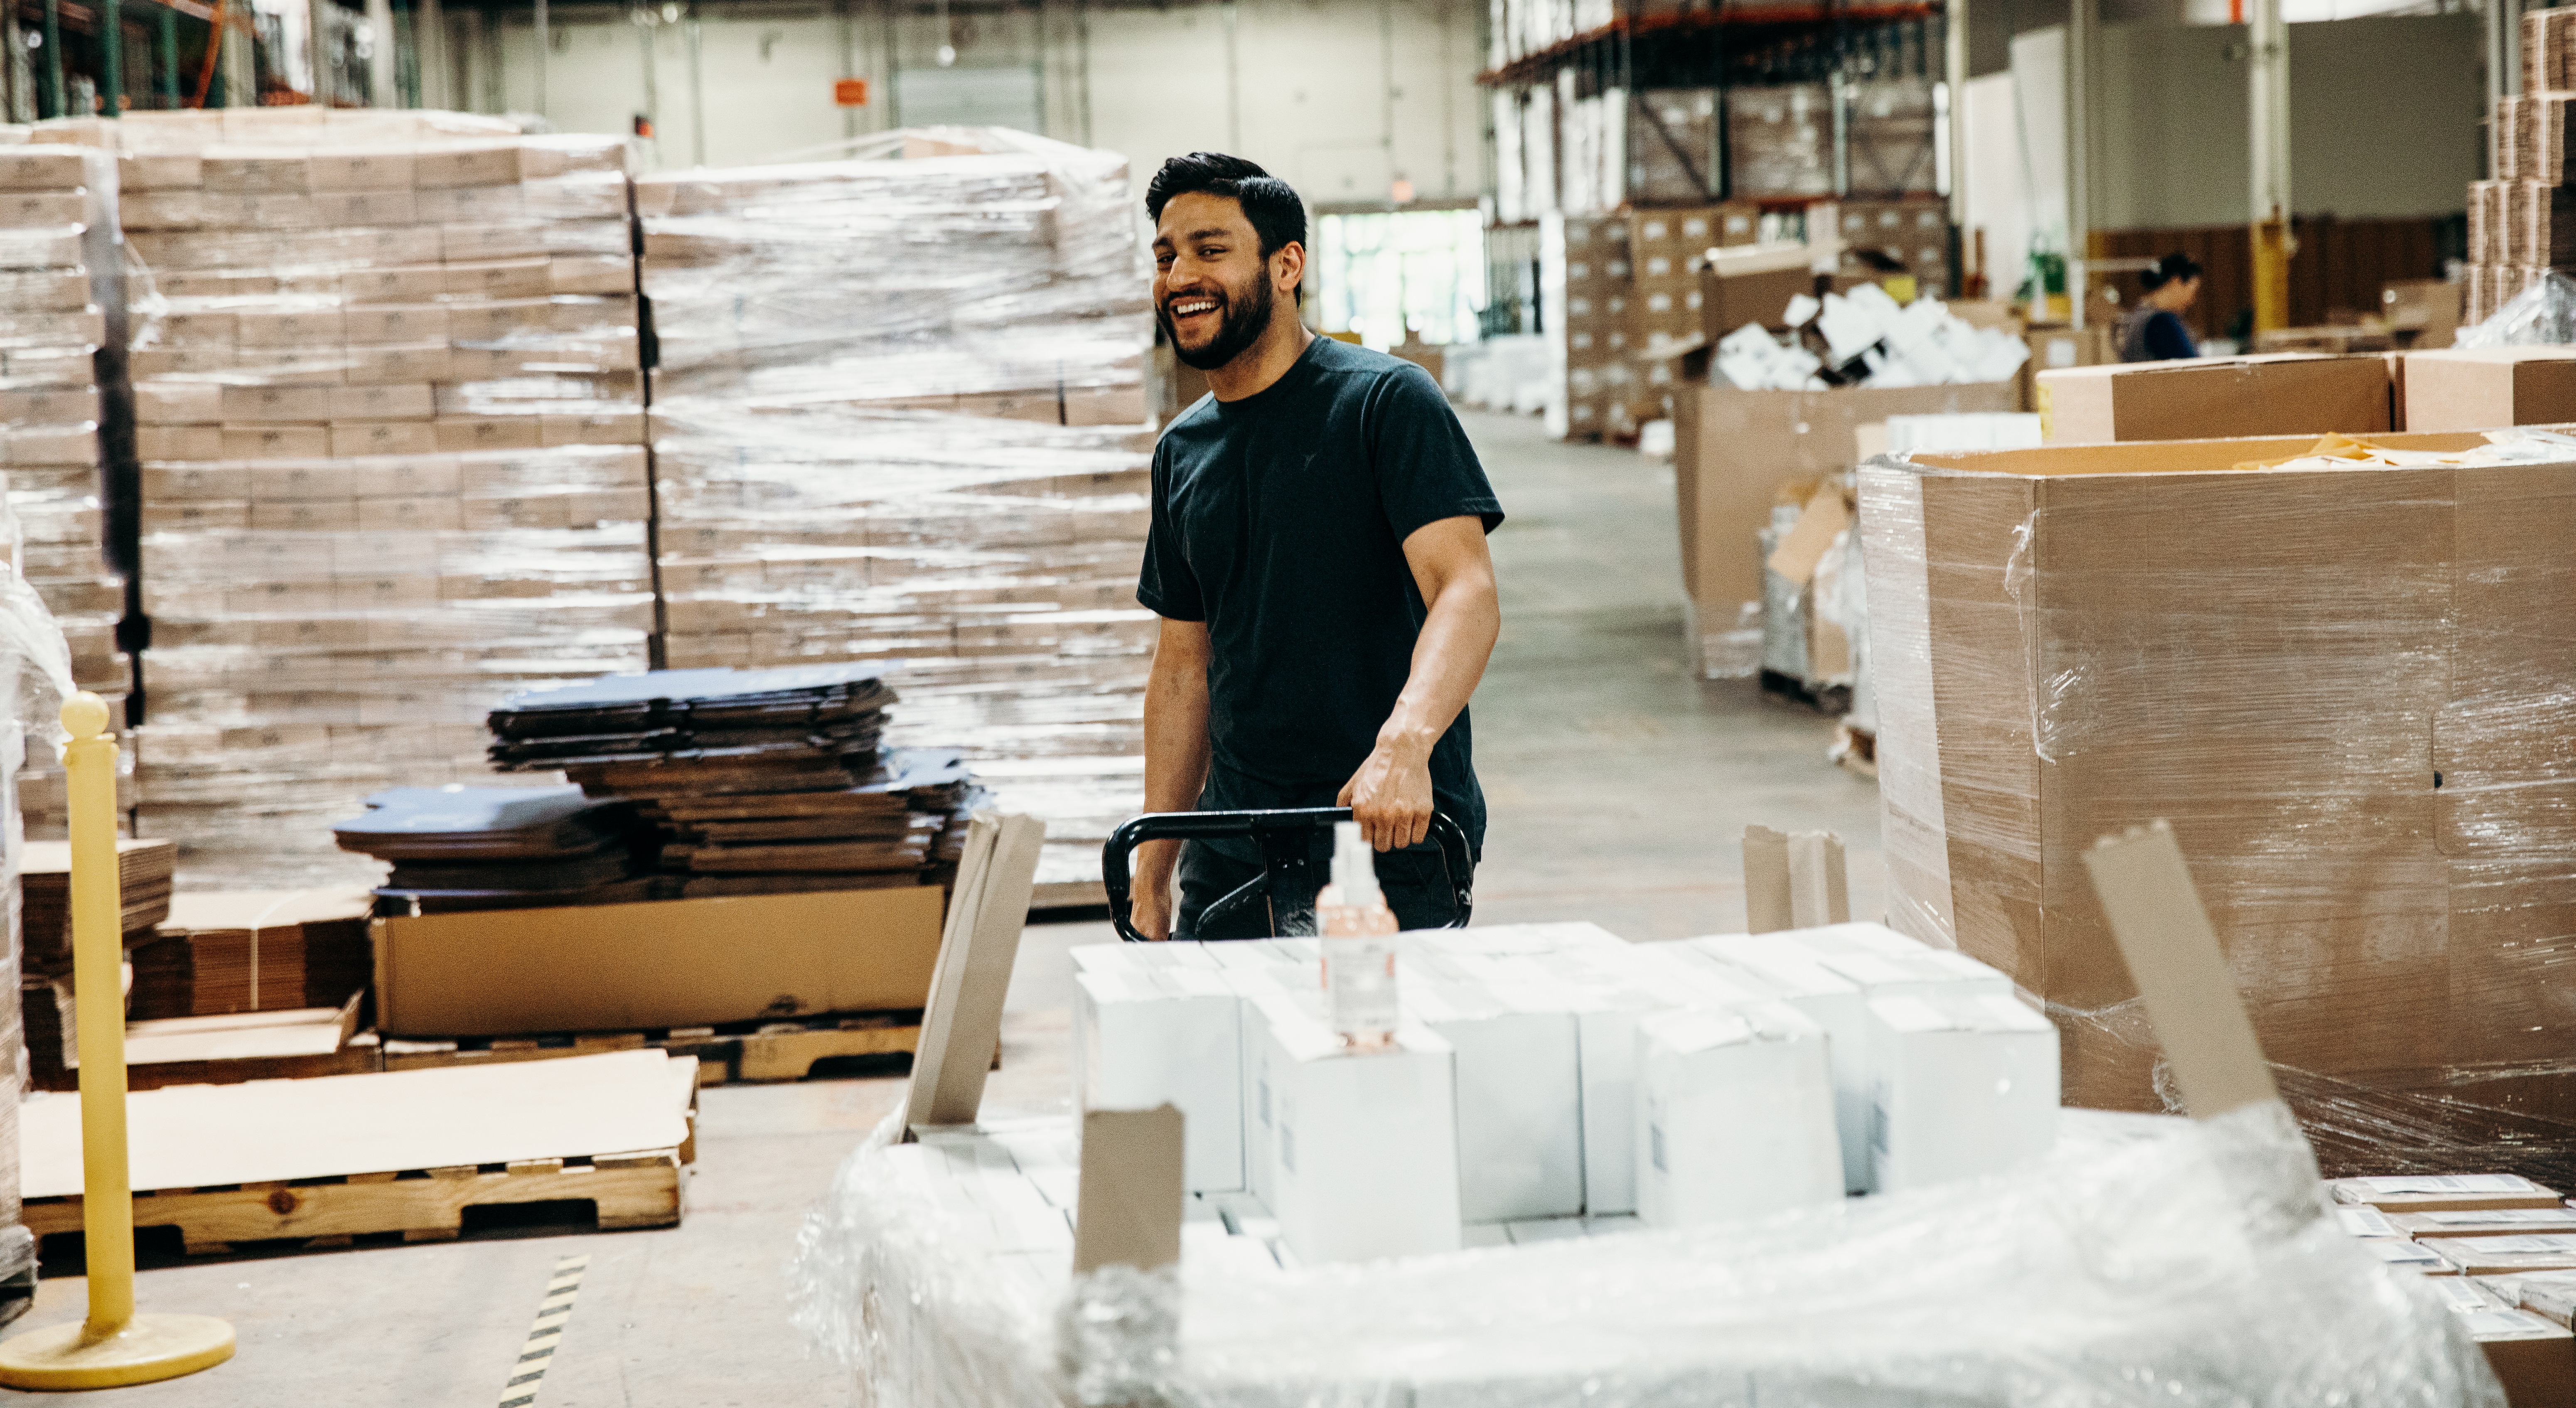 warehouse worker smiling